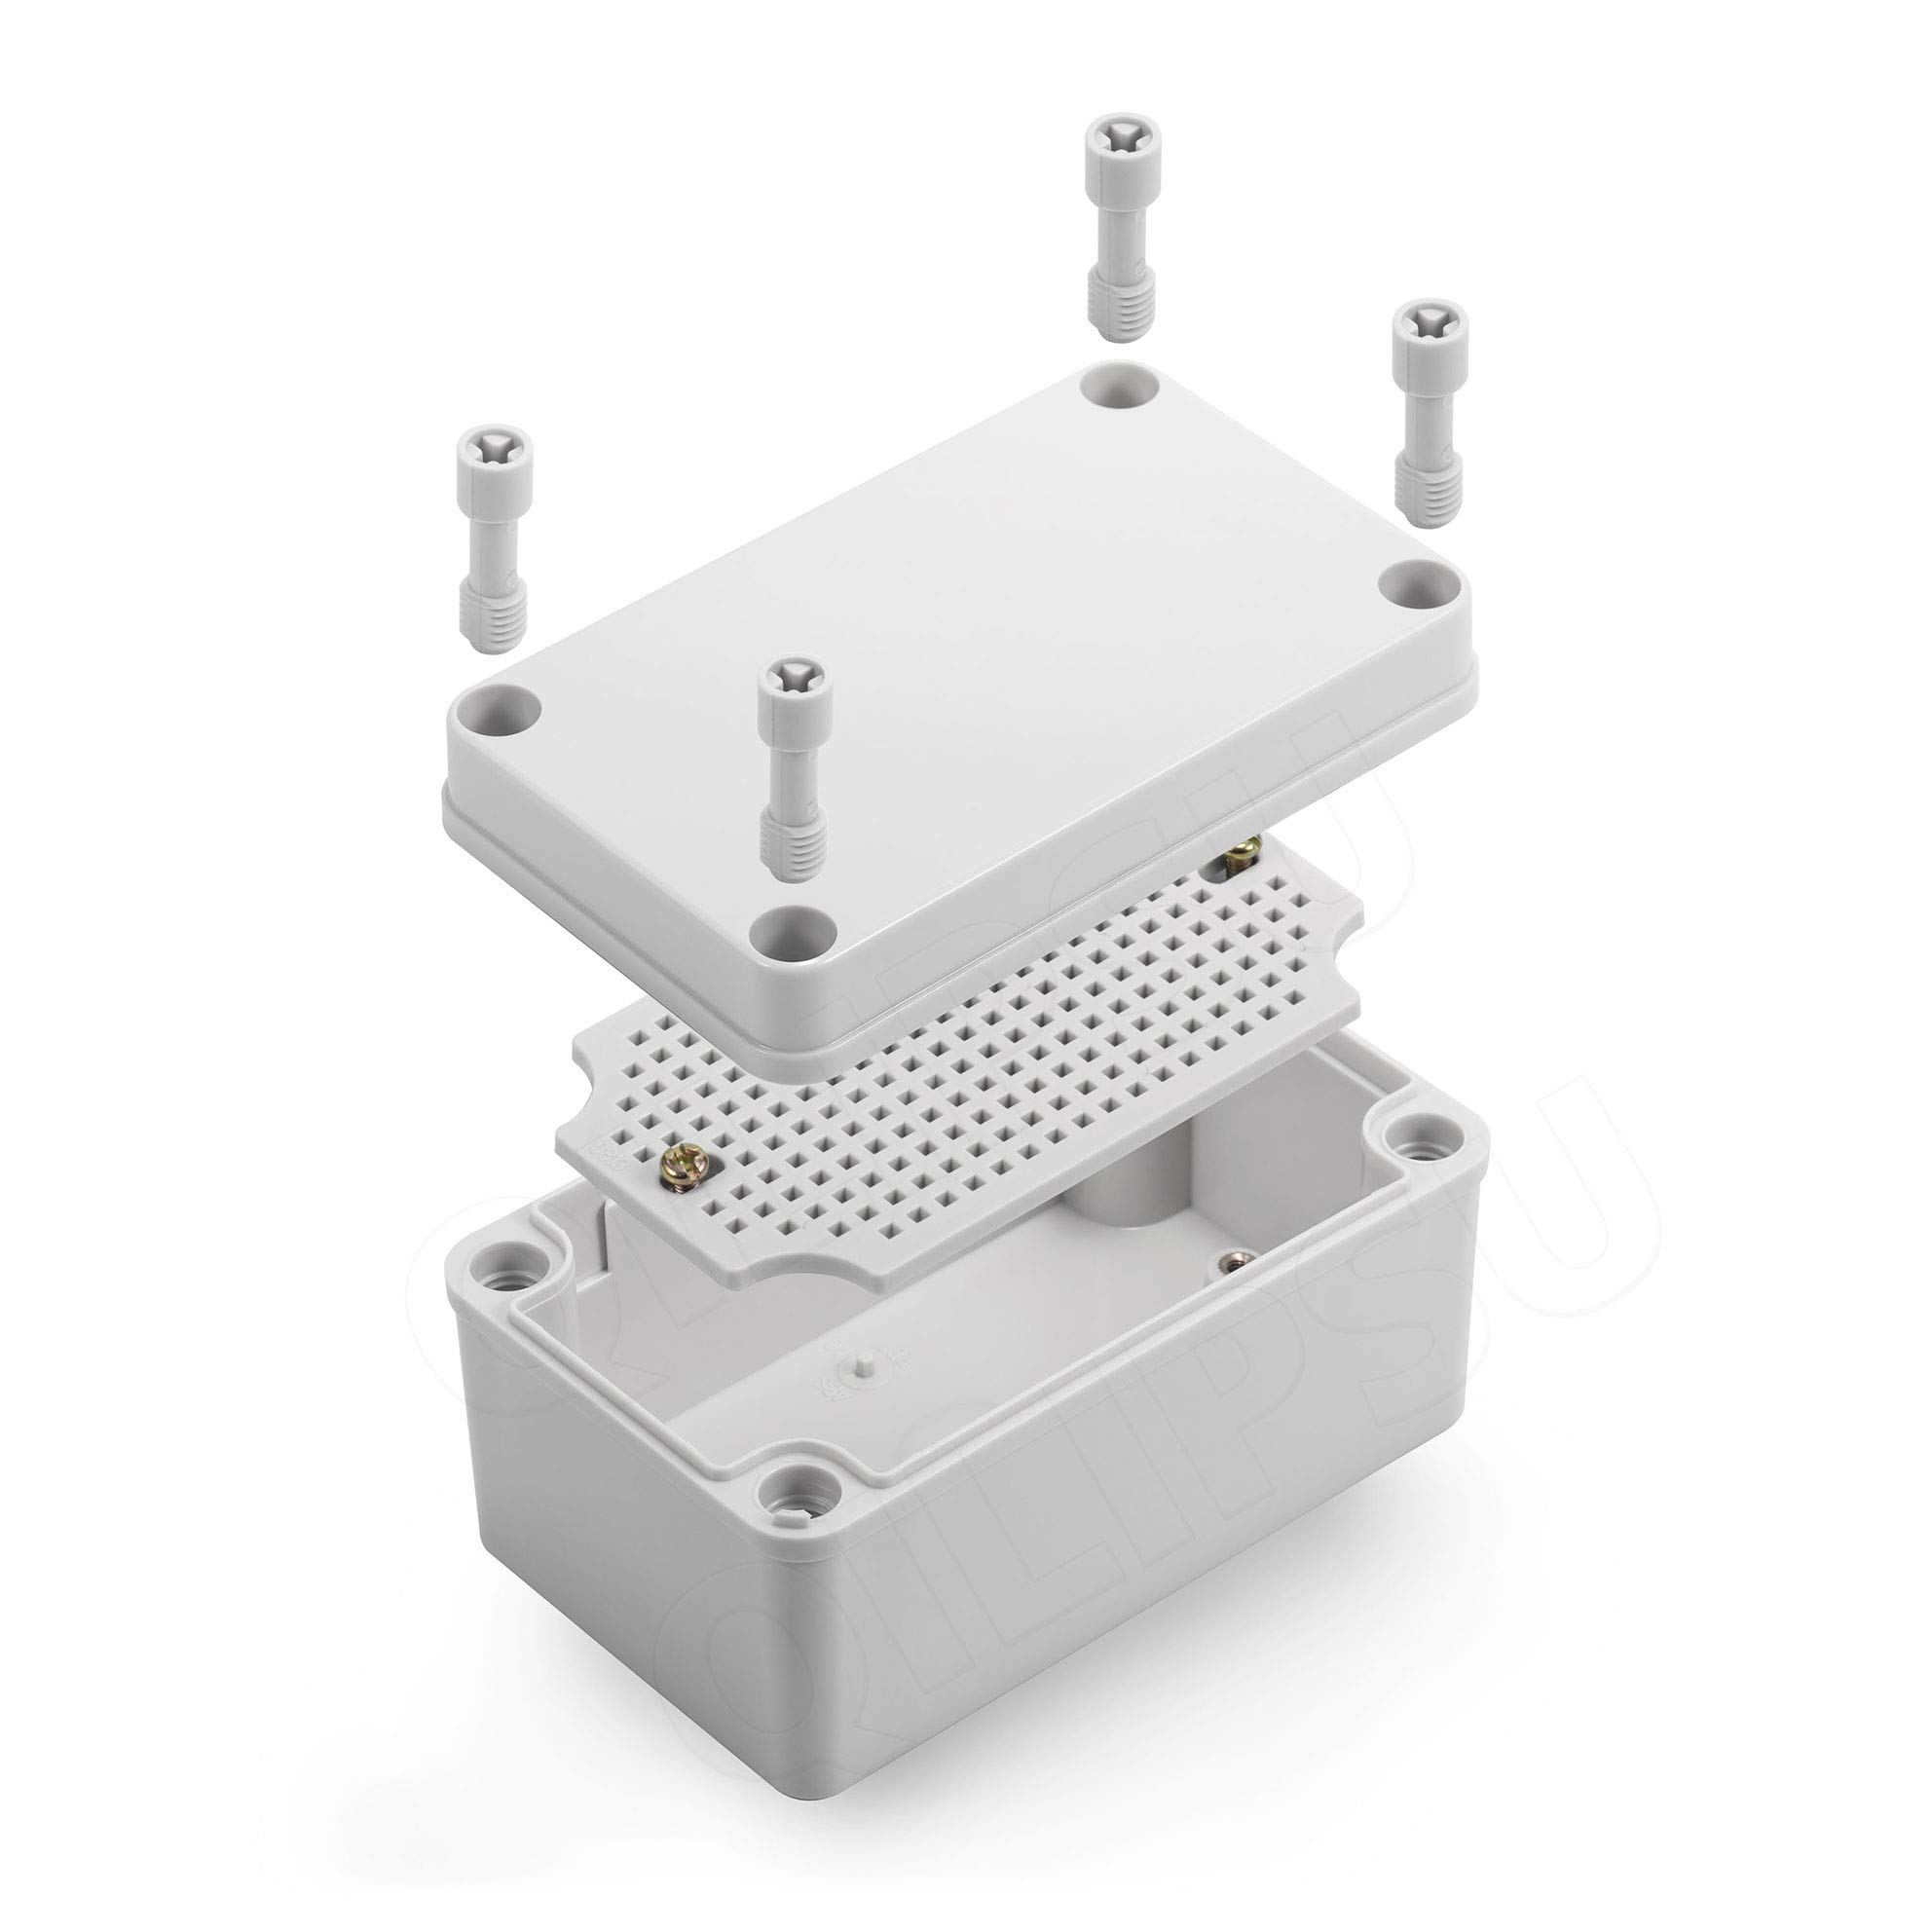 "QILIPSU Junction Box With Mounting Plate 130x80x70mm, ABS Plastic DIY Electrical Project Case IP67 Waterproof Dustproof Enclosure Grey (5.1""x3.1""x2.8"")"